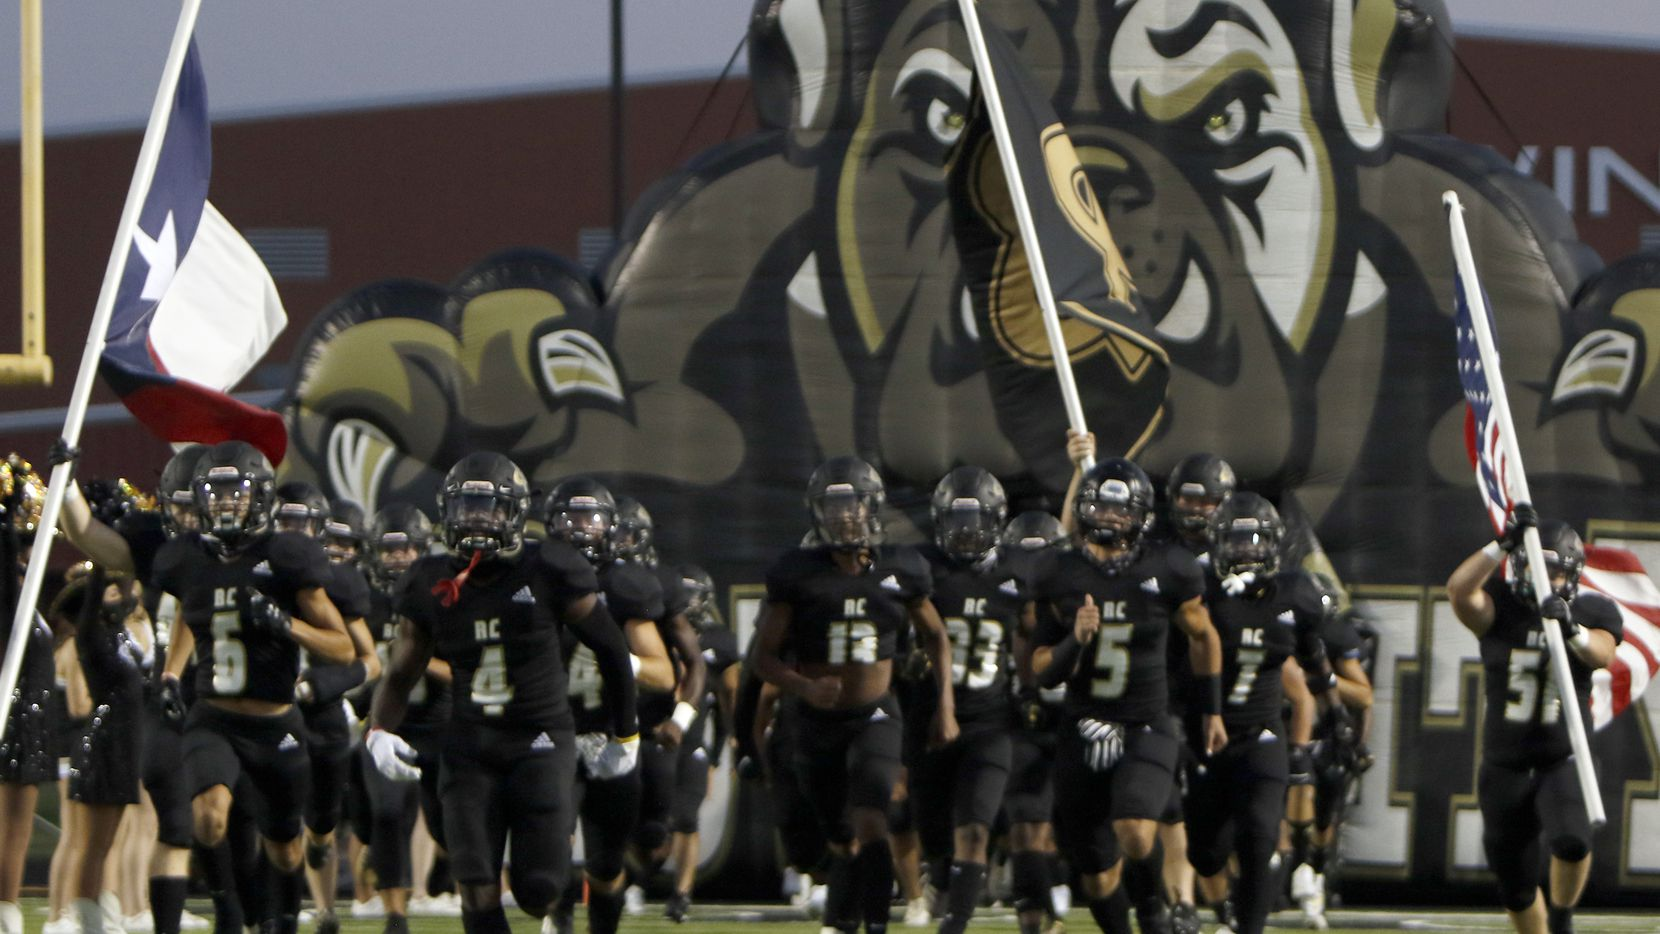 Royse City takes the field for its game against Frisco Centennial on September 25, 2020. (Steve Hamm/ Special Contributor)